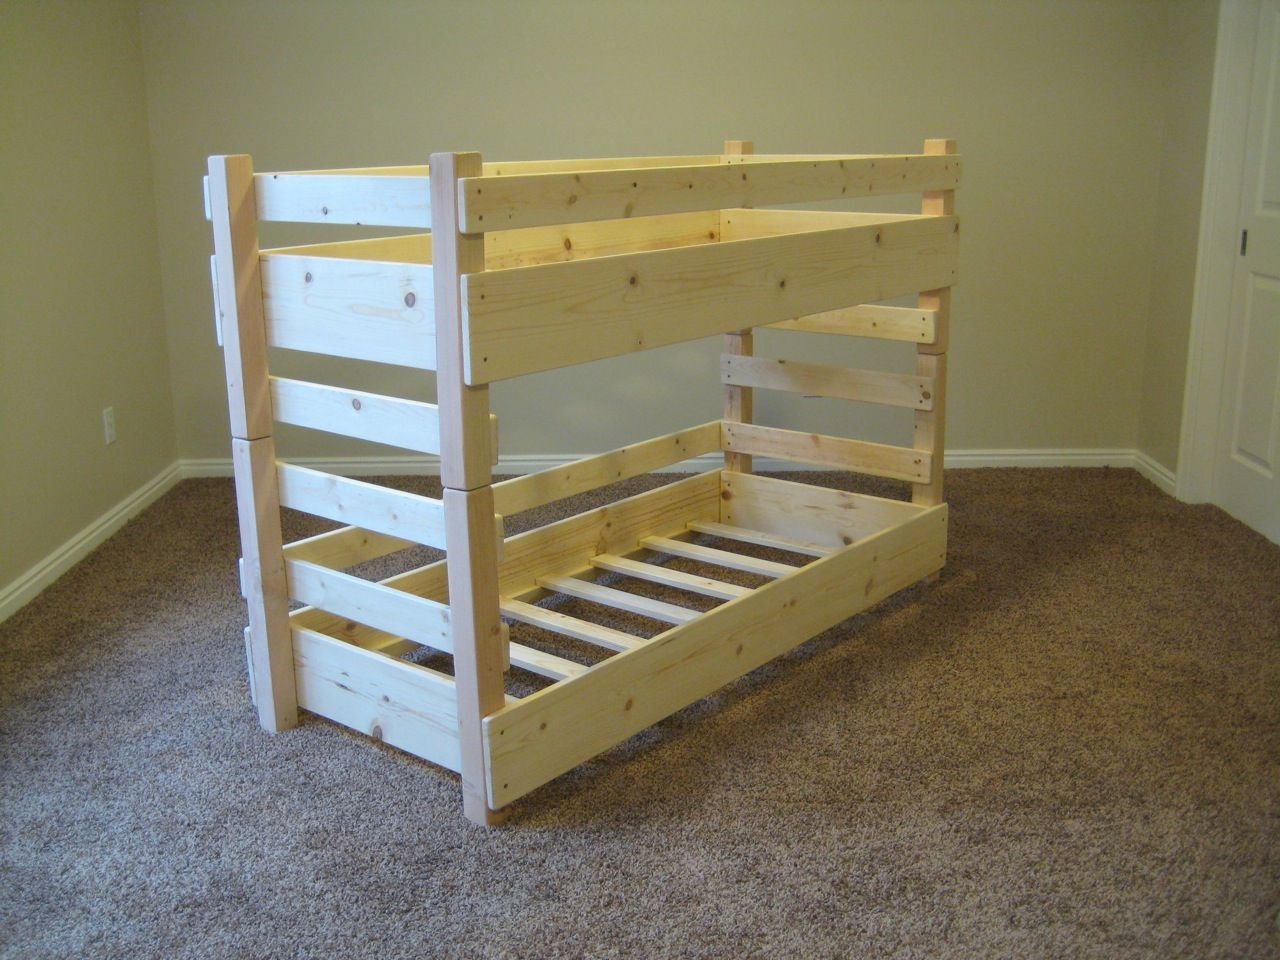 Kids Toddler Bunk Beds By Lil Bunkers It S Crib Size Bunk Beds Toddler Bunk Beds Bunk Beds With Storage